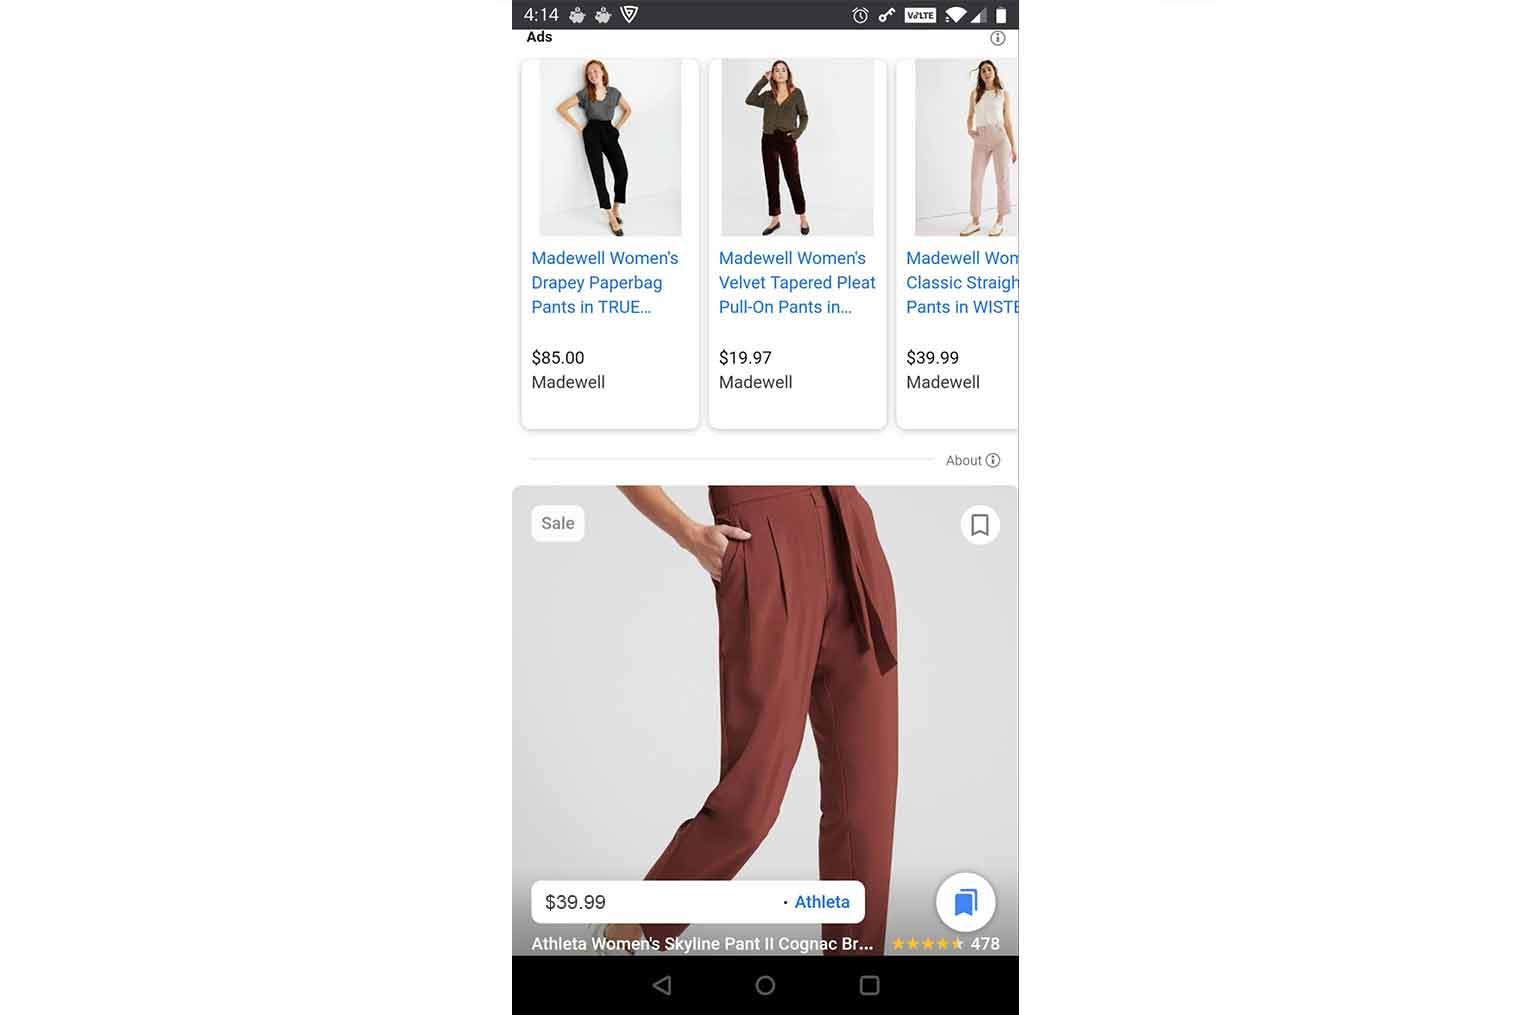 For categories such as clothing, the free listings appear much larger with each of them taking up about half the page.